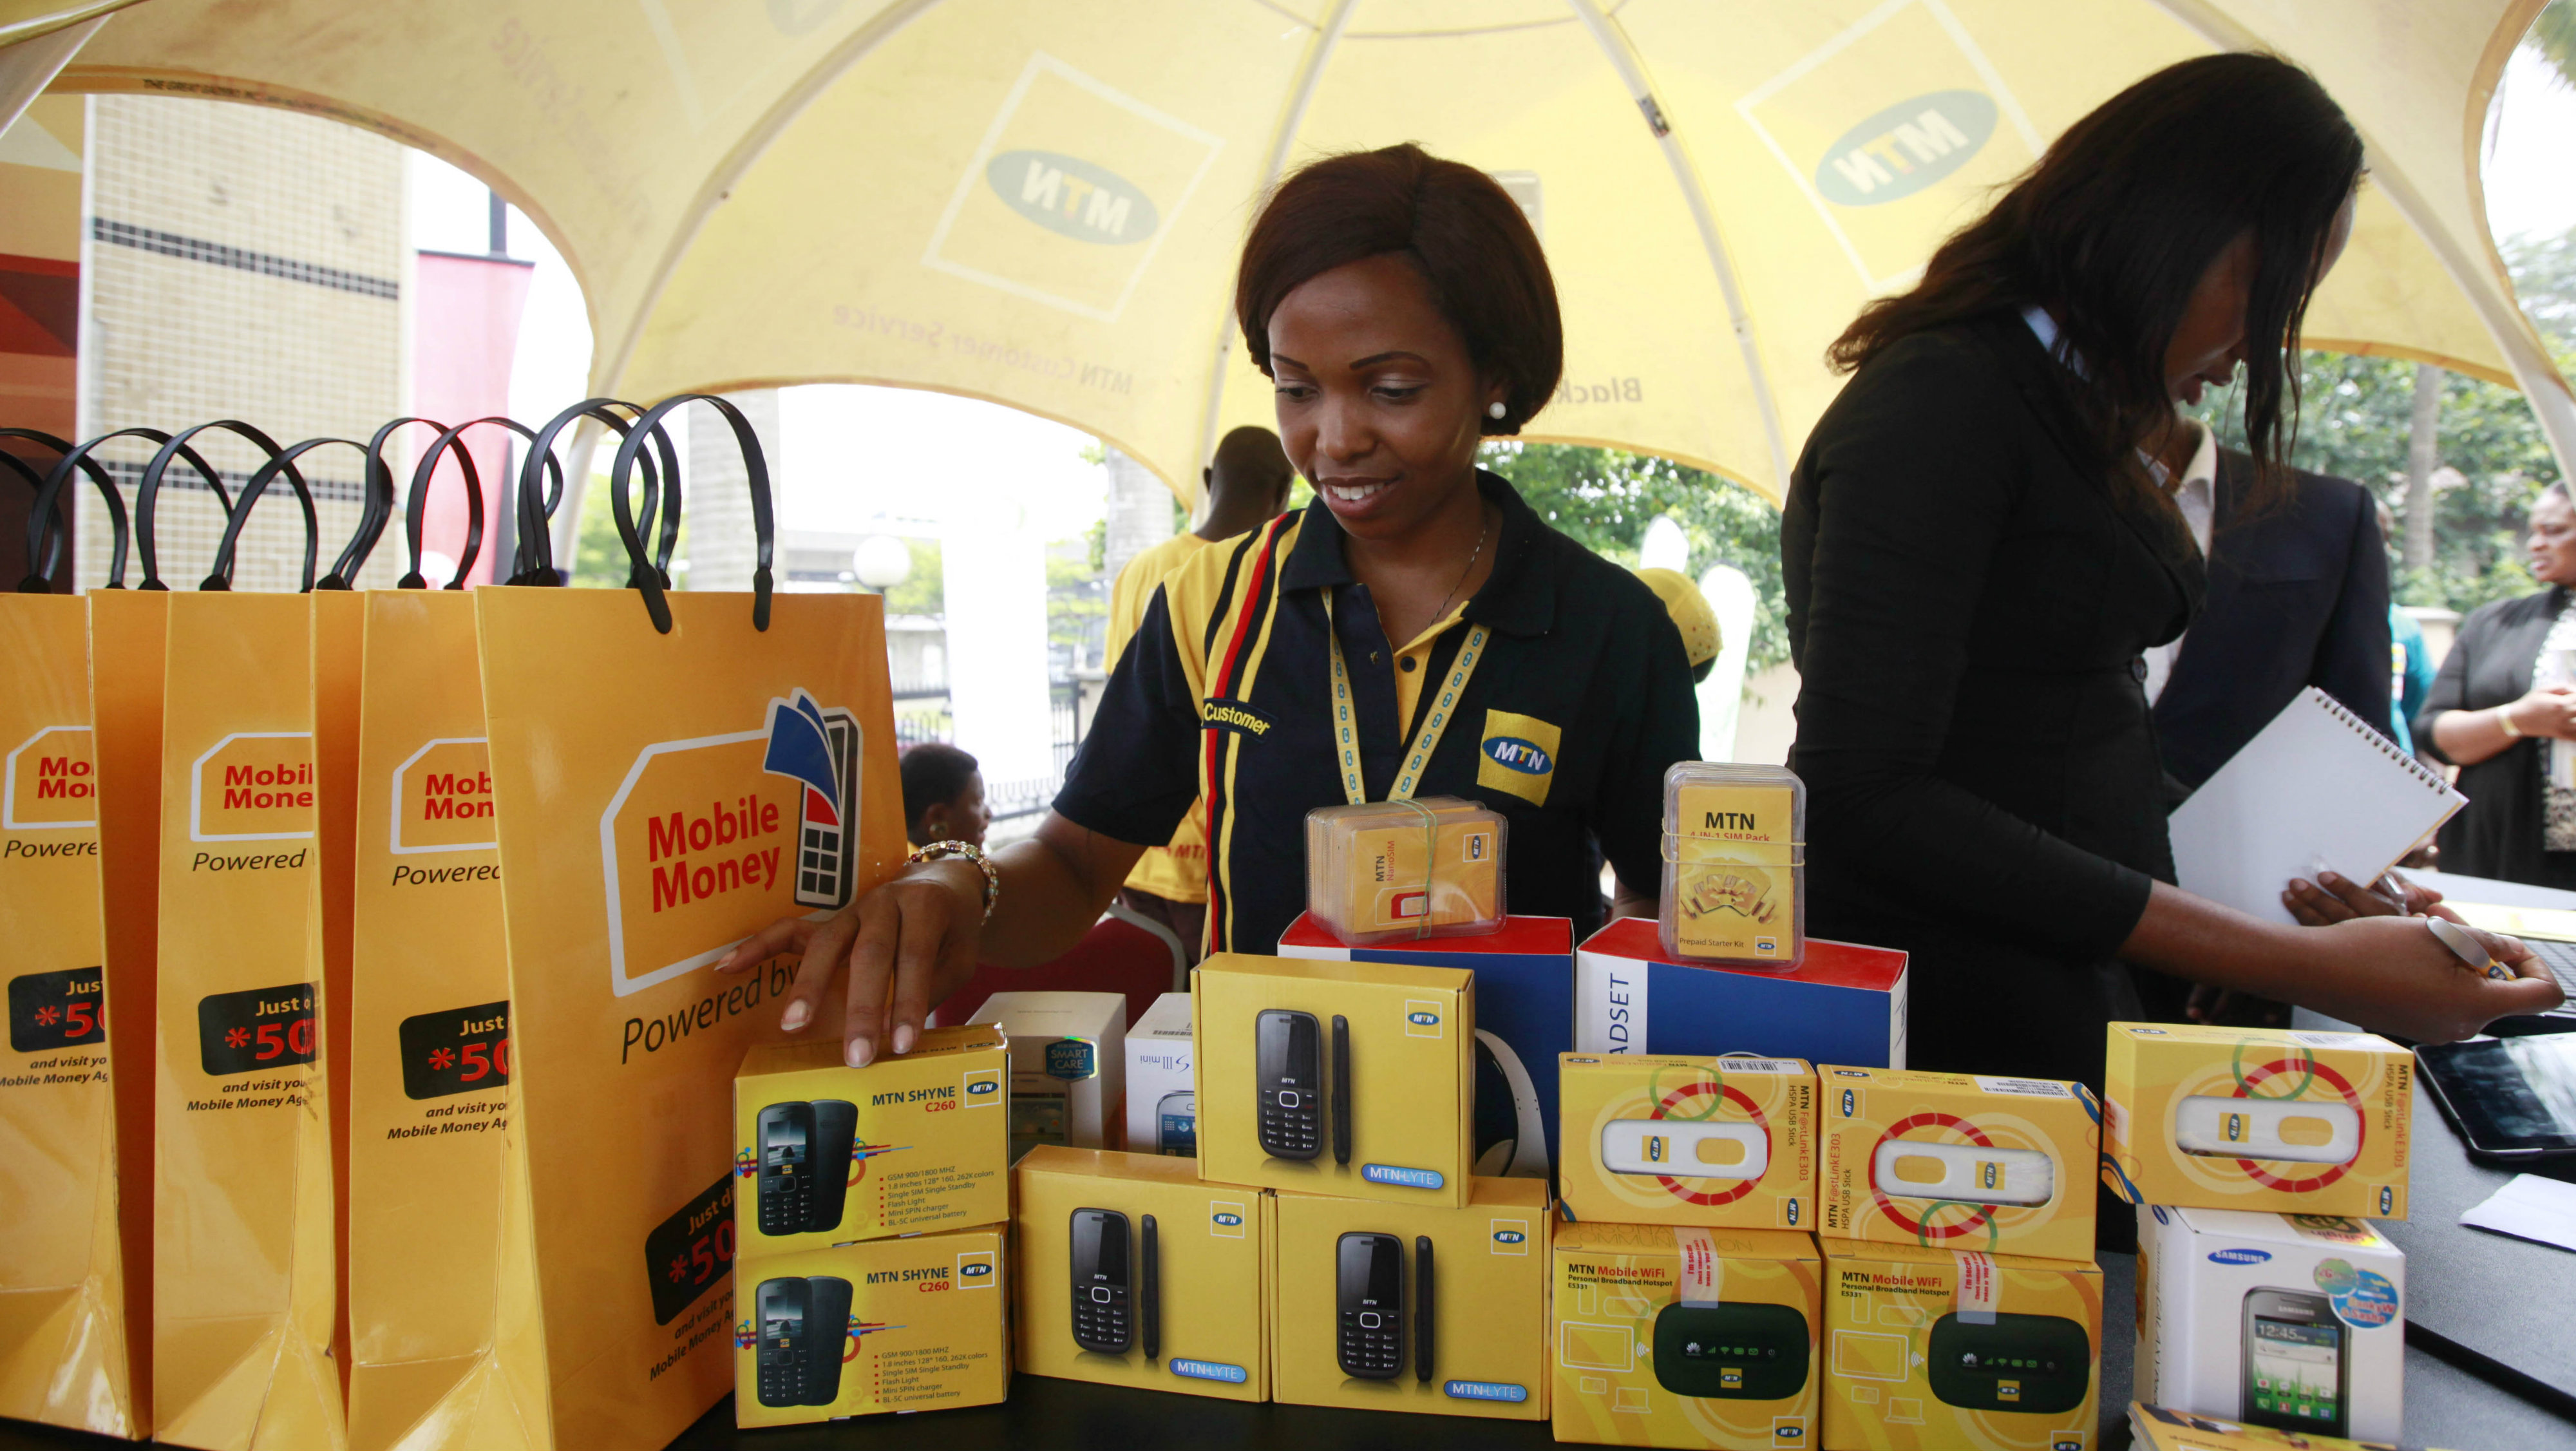 Staff of MTN's Nigeria, during the launch of mobile number portability in Lagos, Nigeria, Monday, April 22, 2013. Mobile phone users in Nigeria can now keep their old number when switching services, a major shakeup in the West African nation's lucrative telecommunications market where customers often complain of poor service. The service, pushed by the federal Nigerian Communications Commission, began Monday across the nation of more than 160 million people. Under the service, customers can keep their number and can switch providers every 90 days for free. (AP Photo/Sunday Alamba)